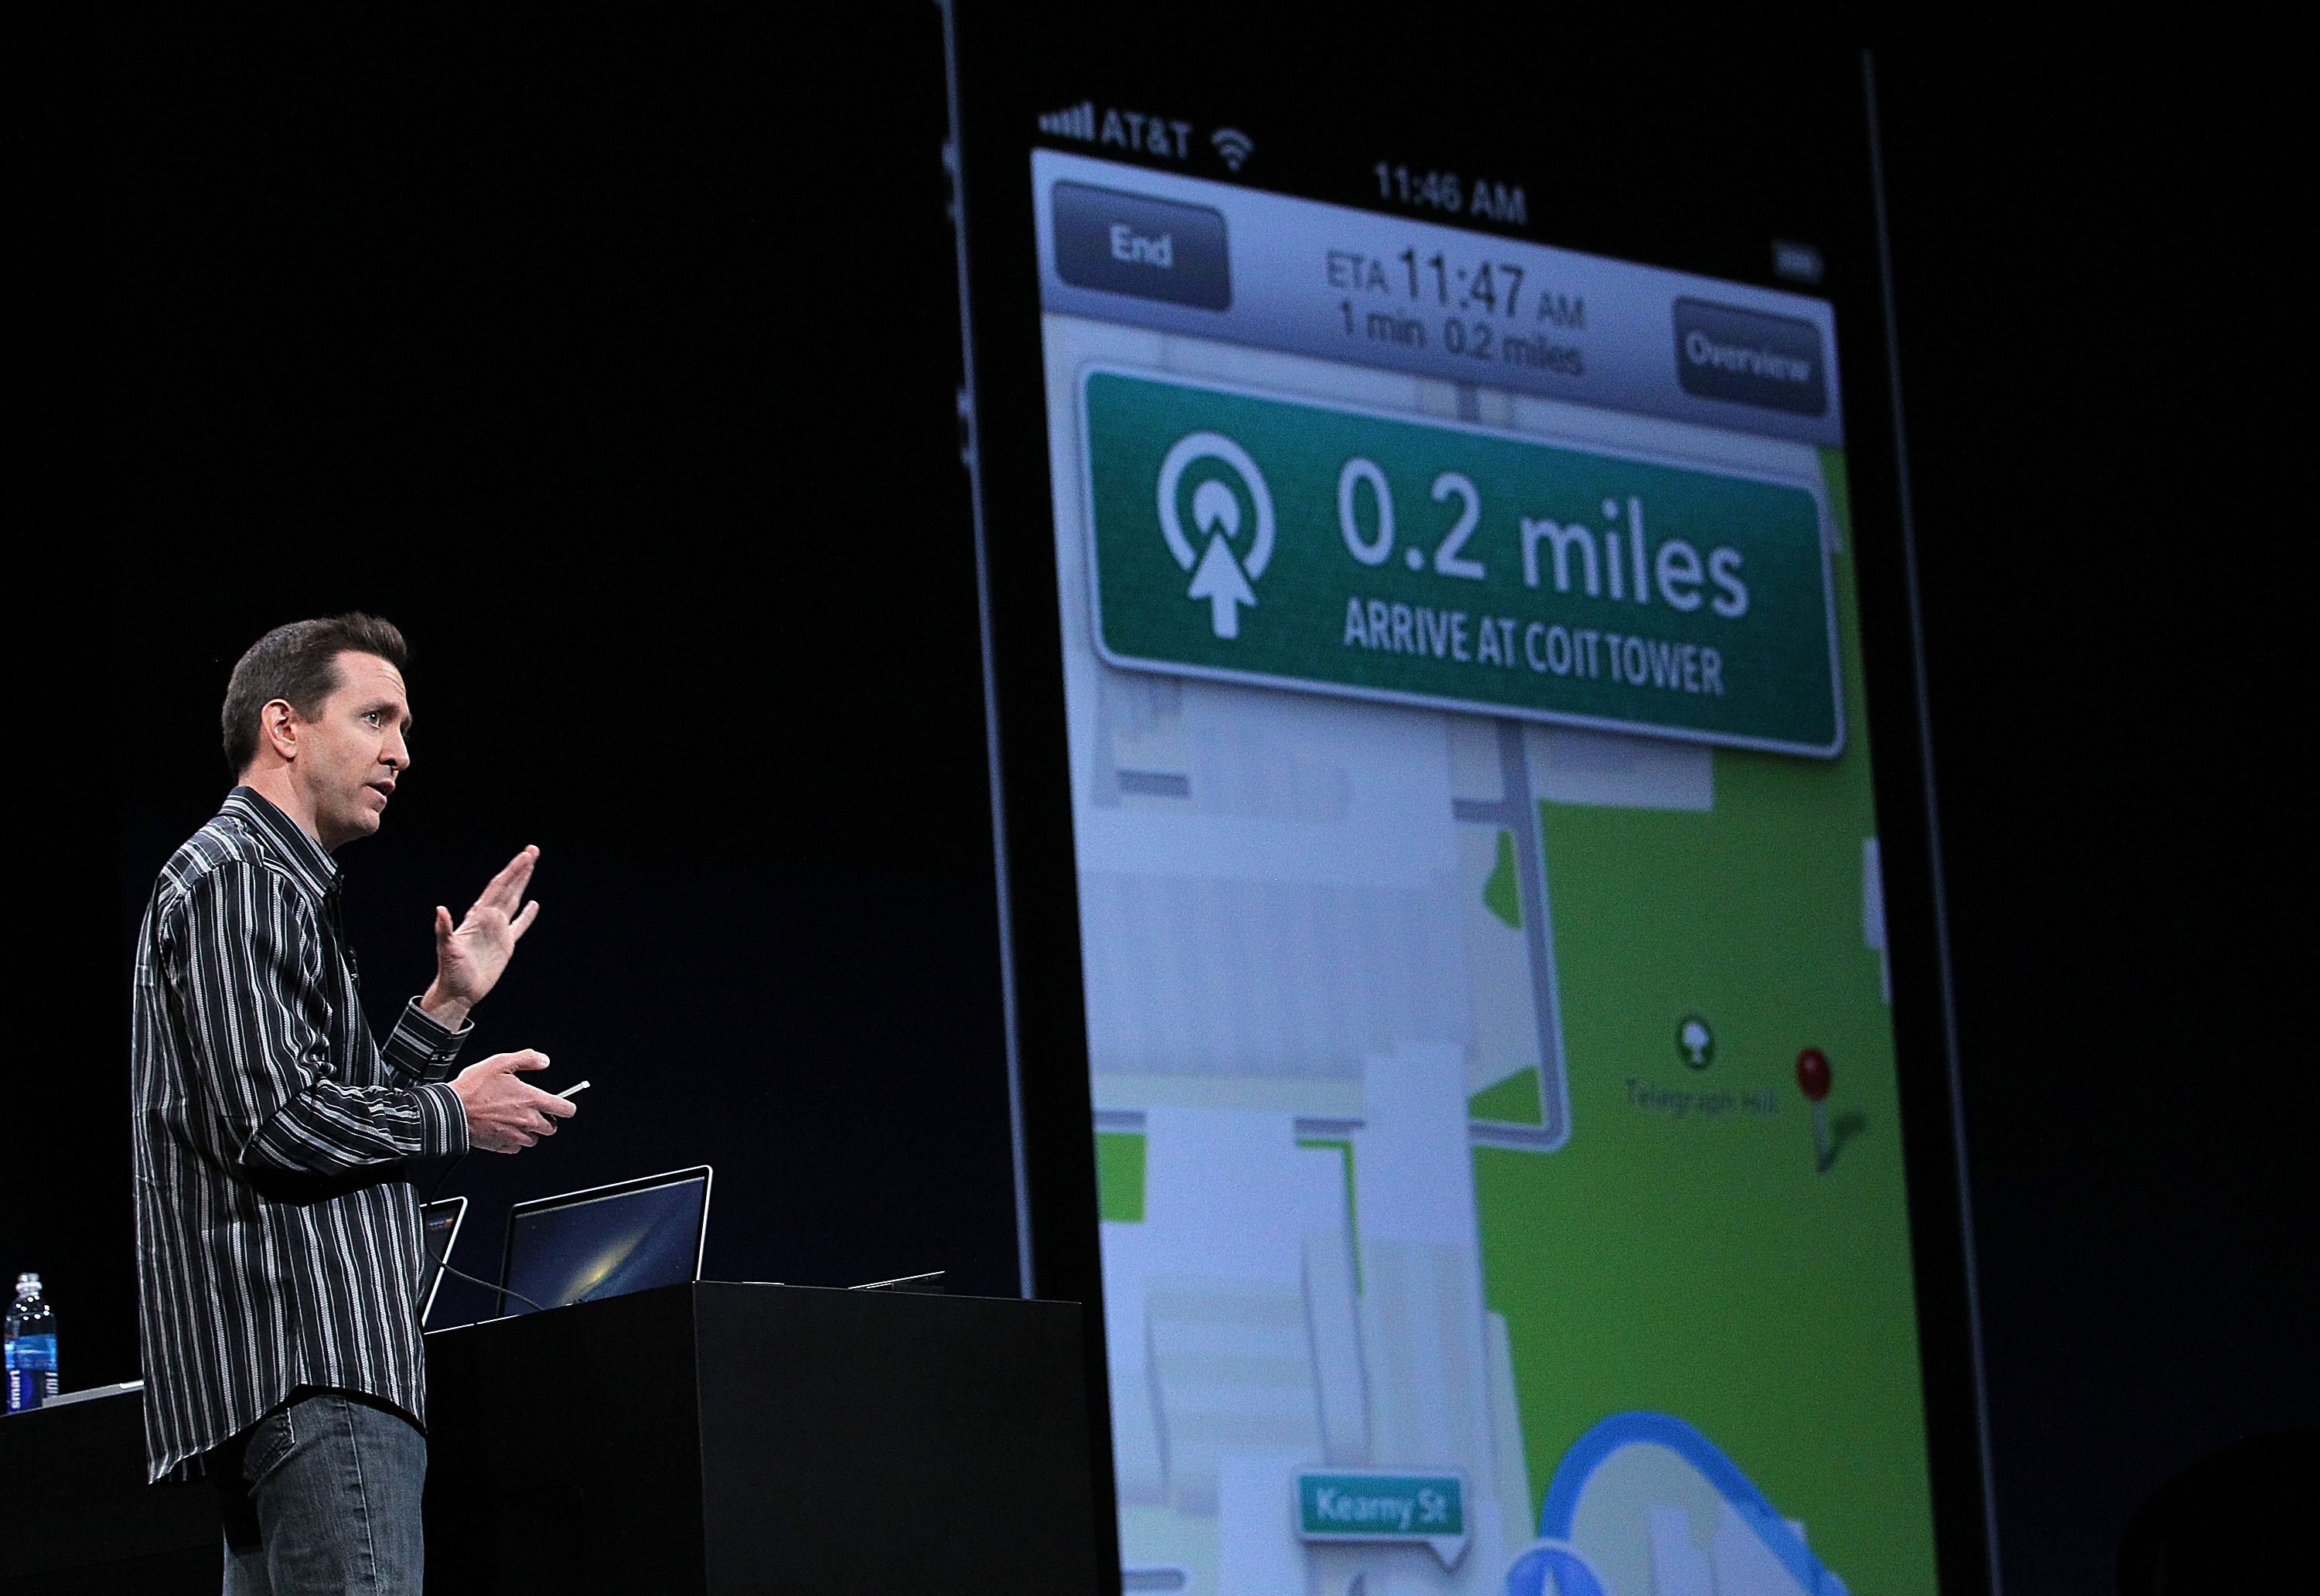 Apple Senior VP of iPhone Software Scott Forstall demonstrates Apple Maps on iOS 6  during the keynote address during the 2012 Apple WWDC keynote address at the Moscone Center on June 11, 2012 in San Francisco, California.